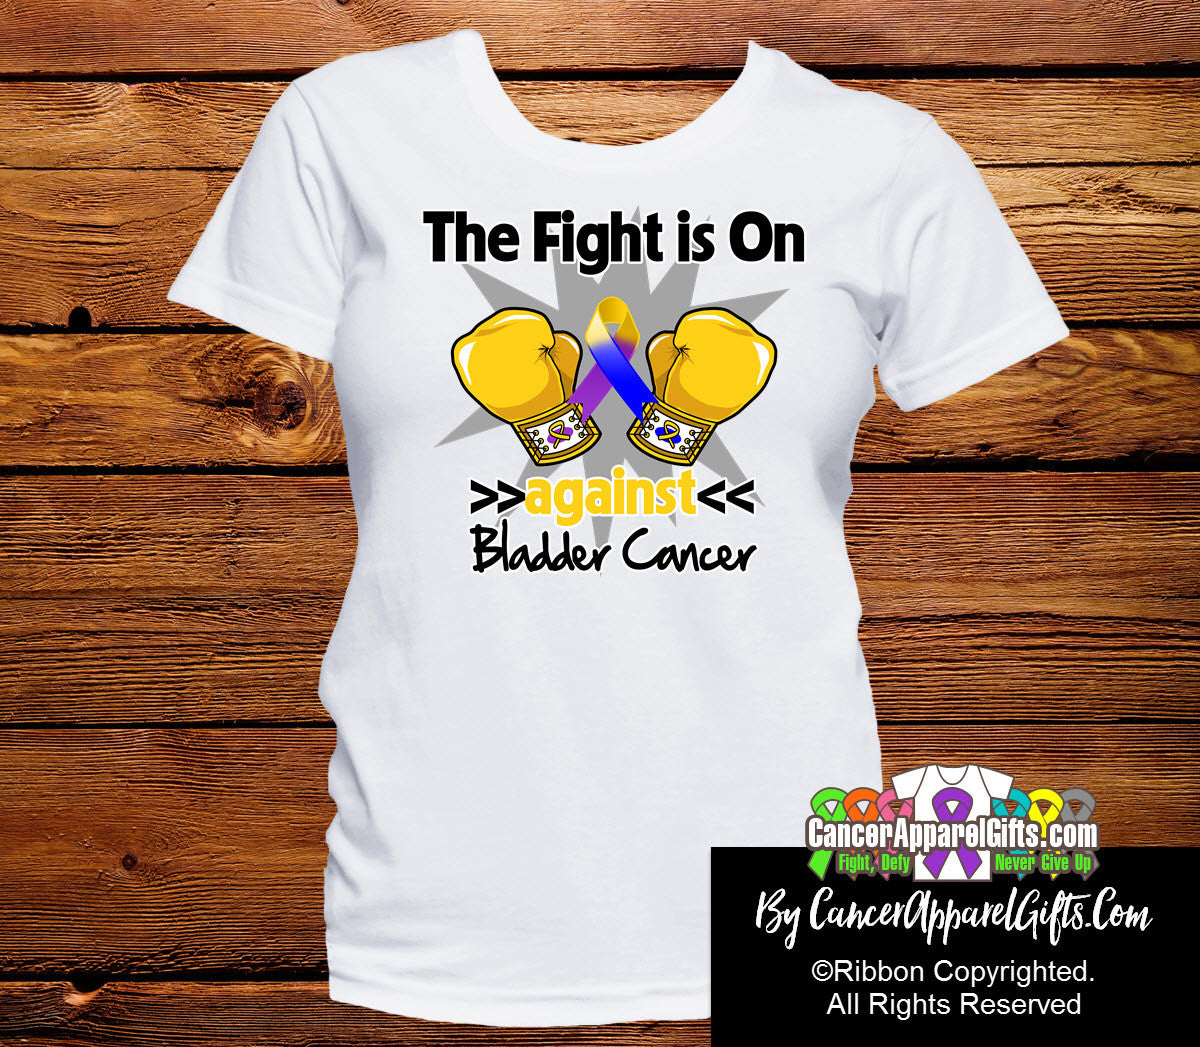 Bladder Cancer The Fight is On Ladies Shirts